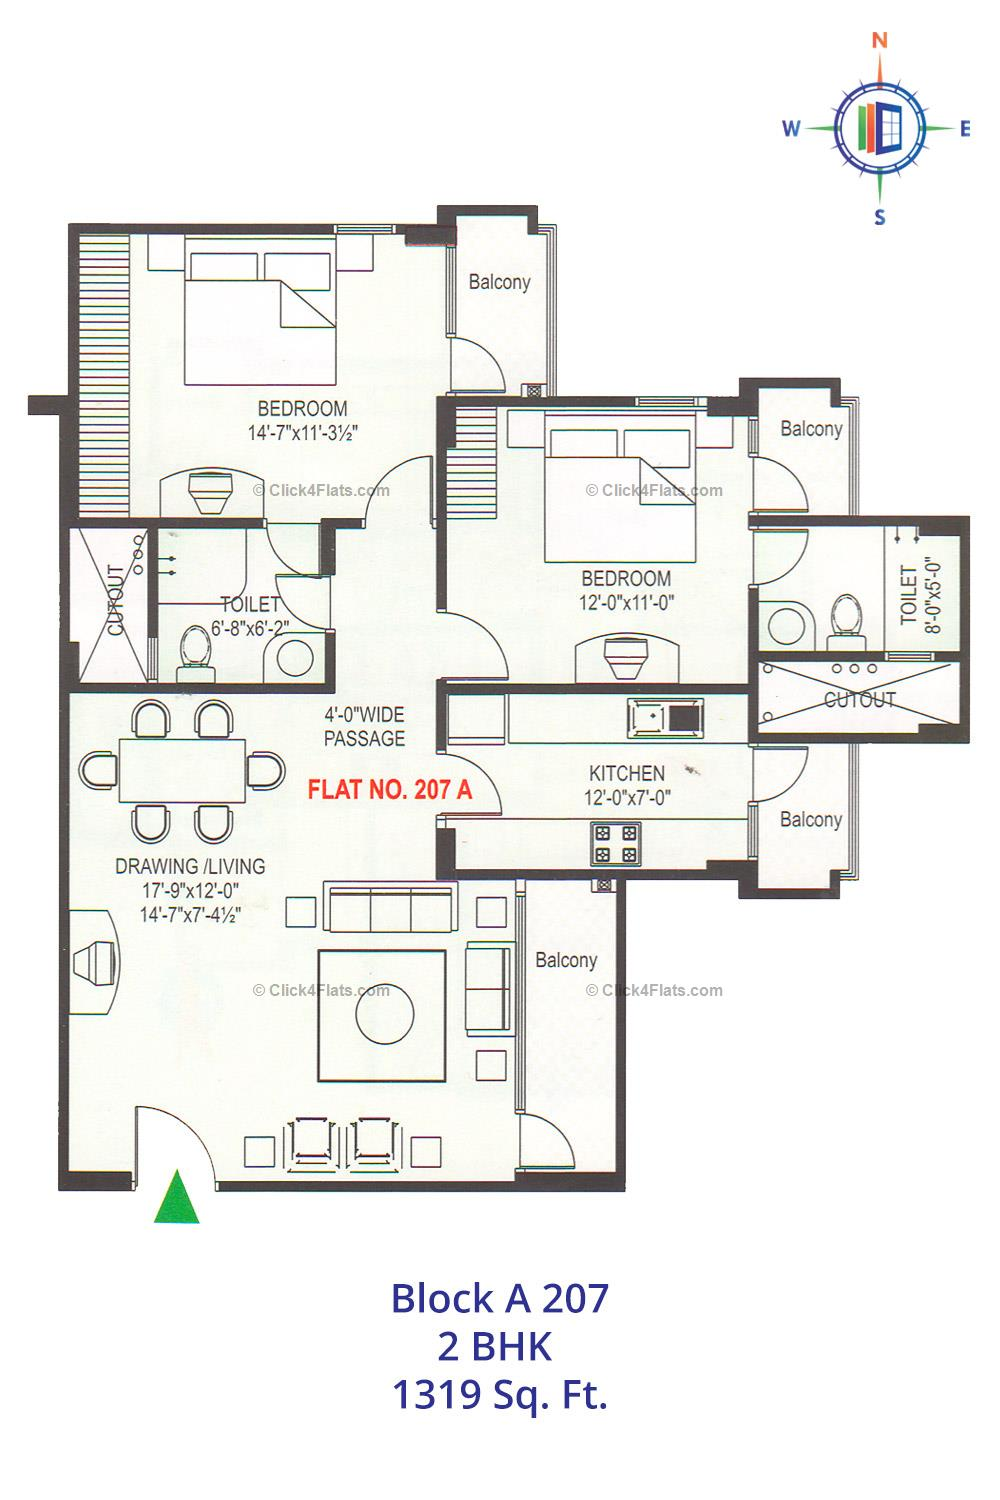 Rosewood Apartments 2 BHK